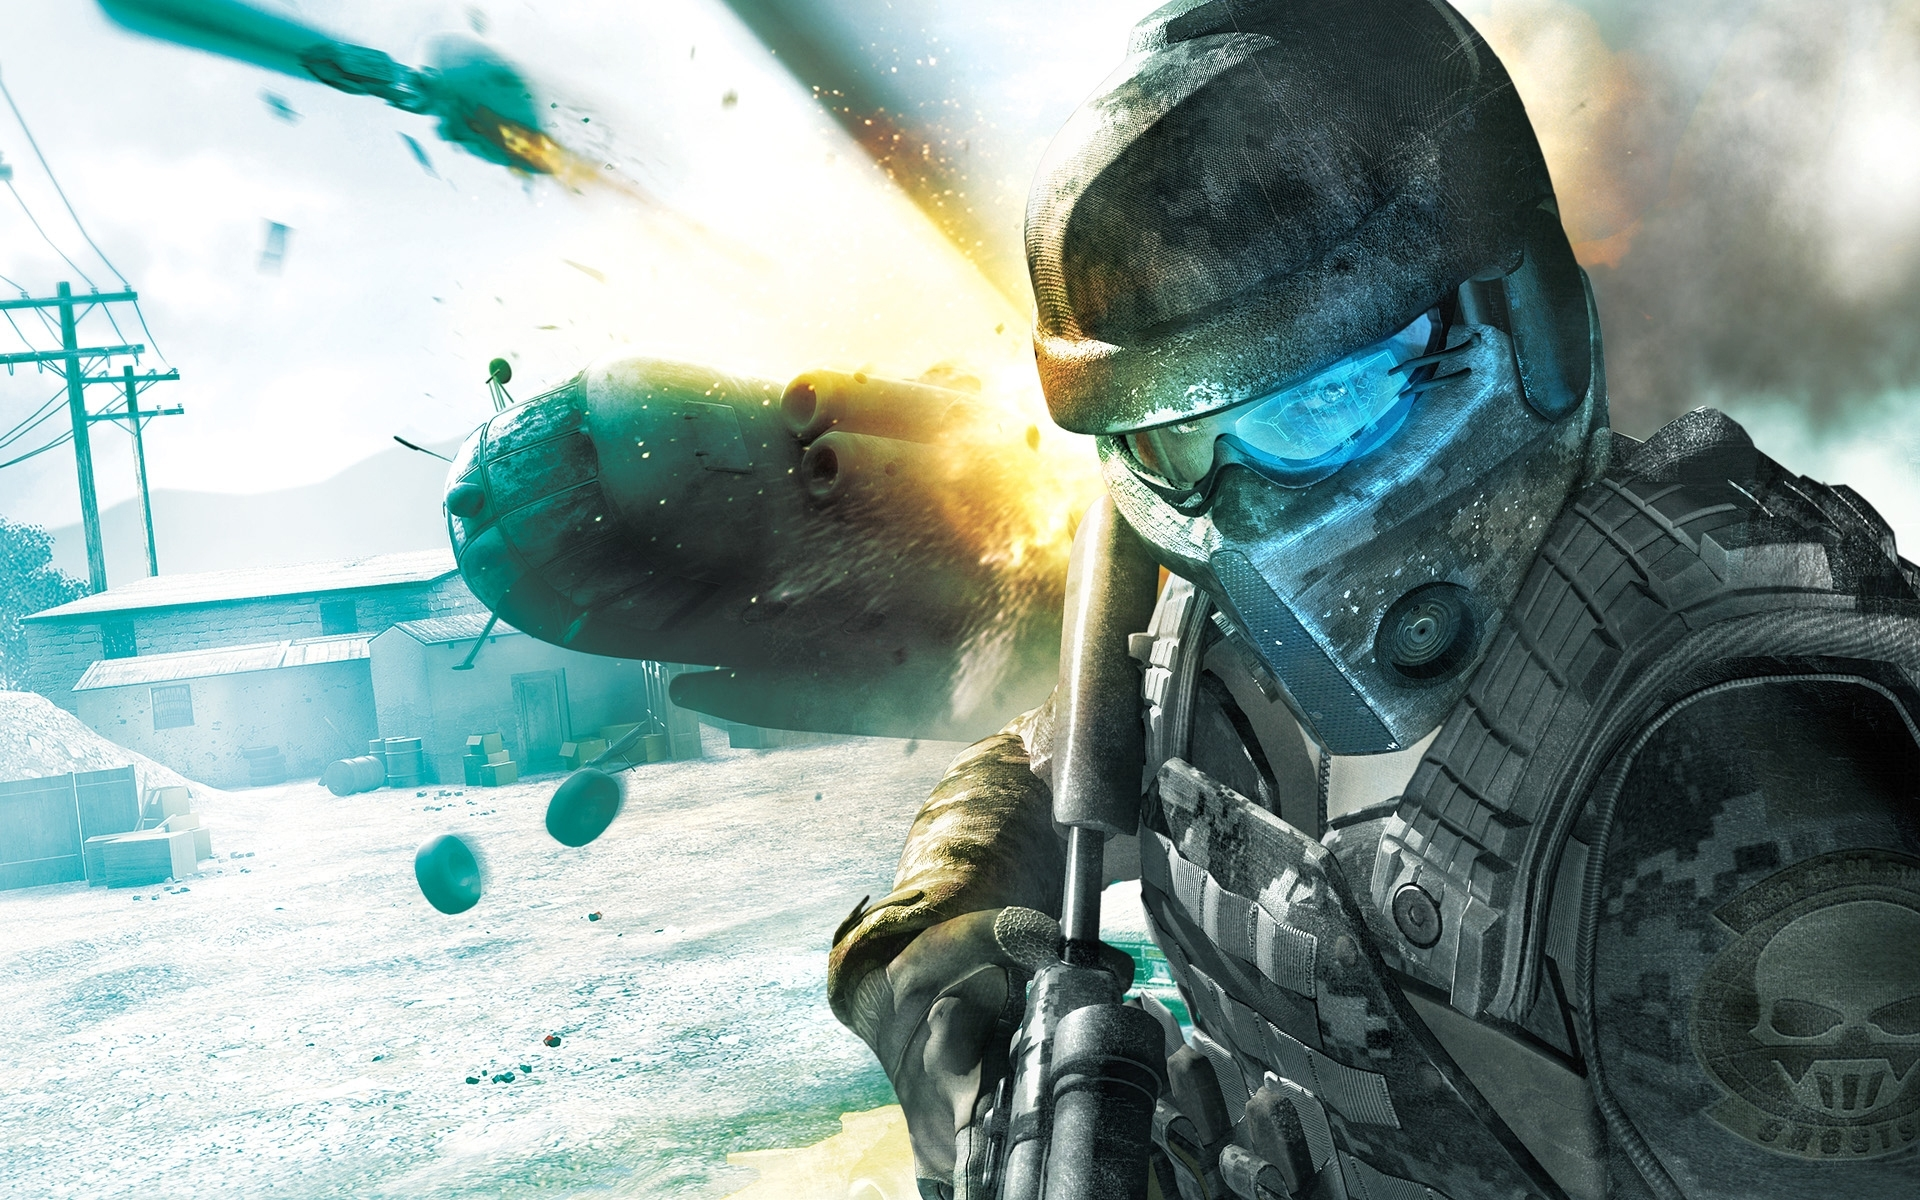 Popular Ghost Recon: Future Soldier images for mobile phone